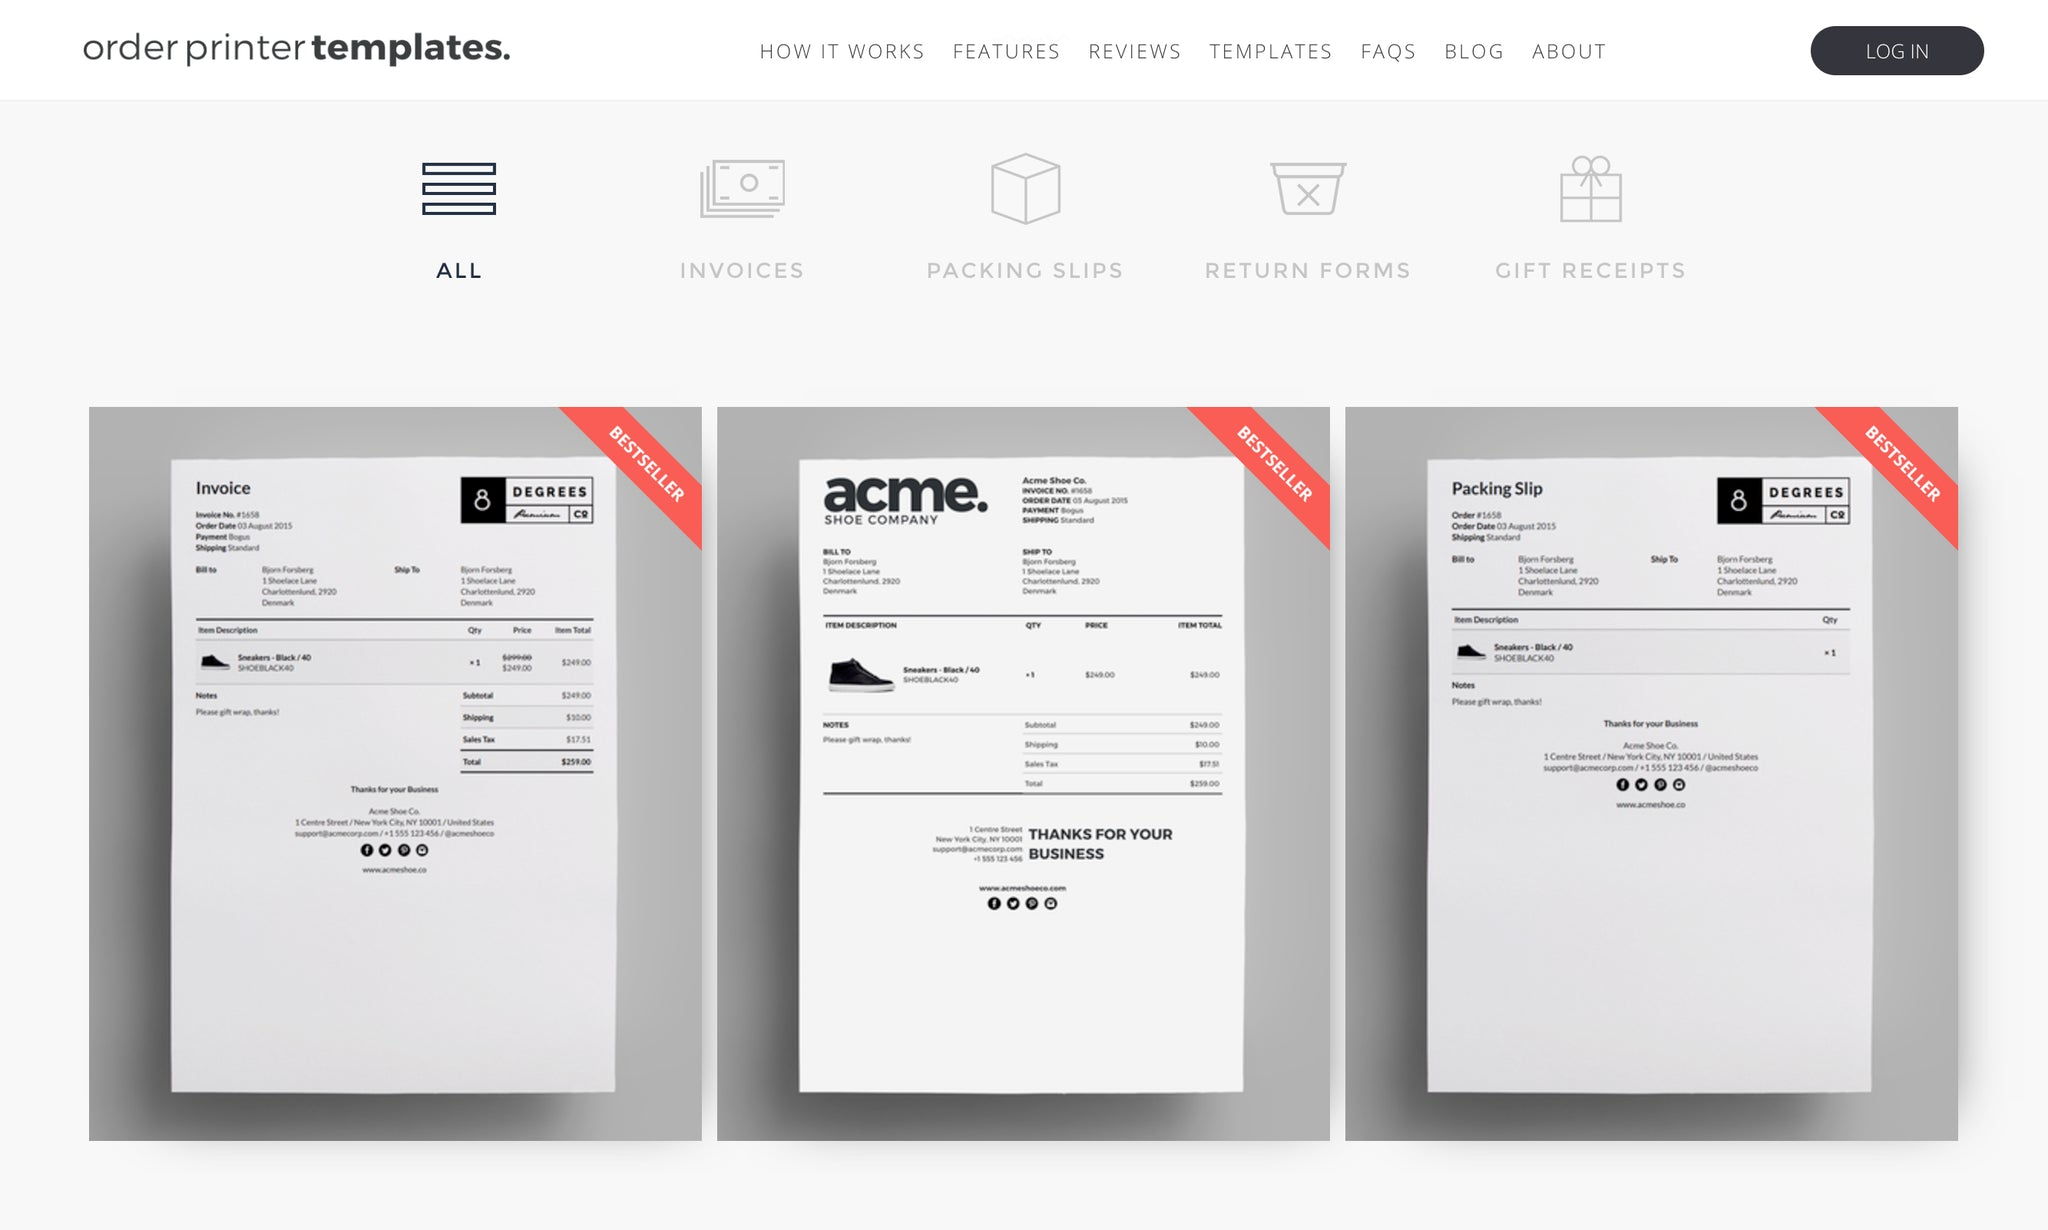 Invoices Made Easy Pdf Invoices In Shopify  The Definitive Guide  Shopify  You Invoice Maker Free Download Pdf with Purchase Receipt Excel  Used In The Invoices Its A Good Basic App However There Are  Limitations The Templates Are Pretty Ugly You Require Html Skills To  Improve Them  Tax Receipt Template Canada Word